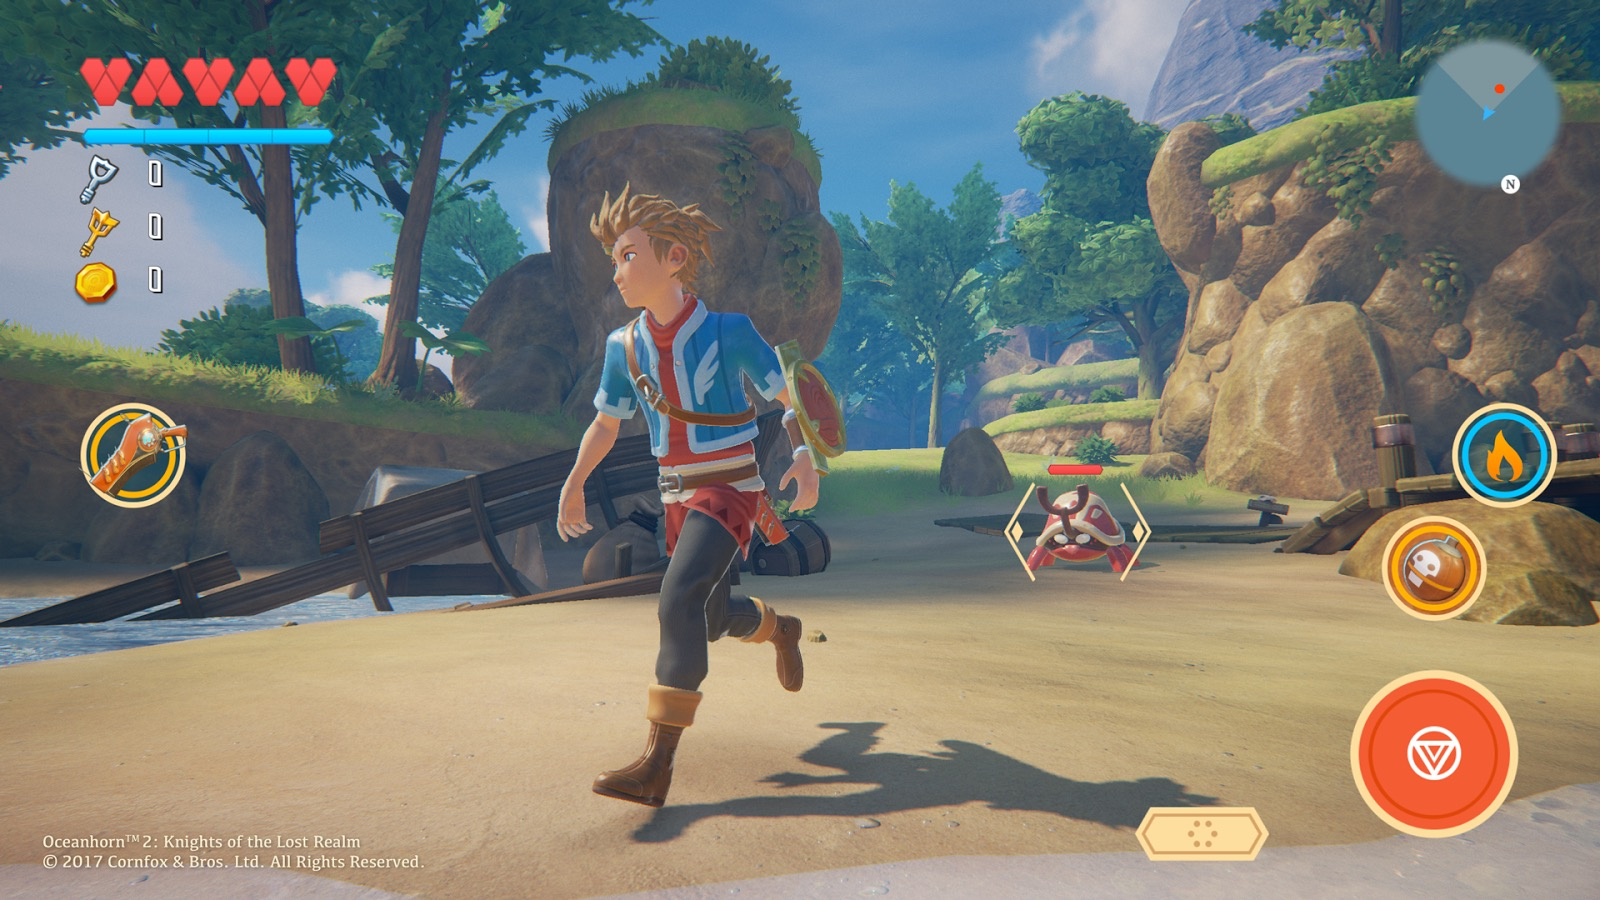 Oceanhorn 2' Being Made in Unreal Engine 4, Gorgeous New